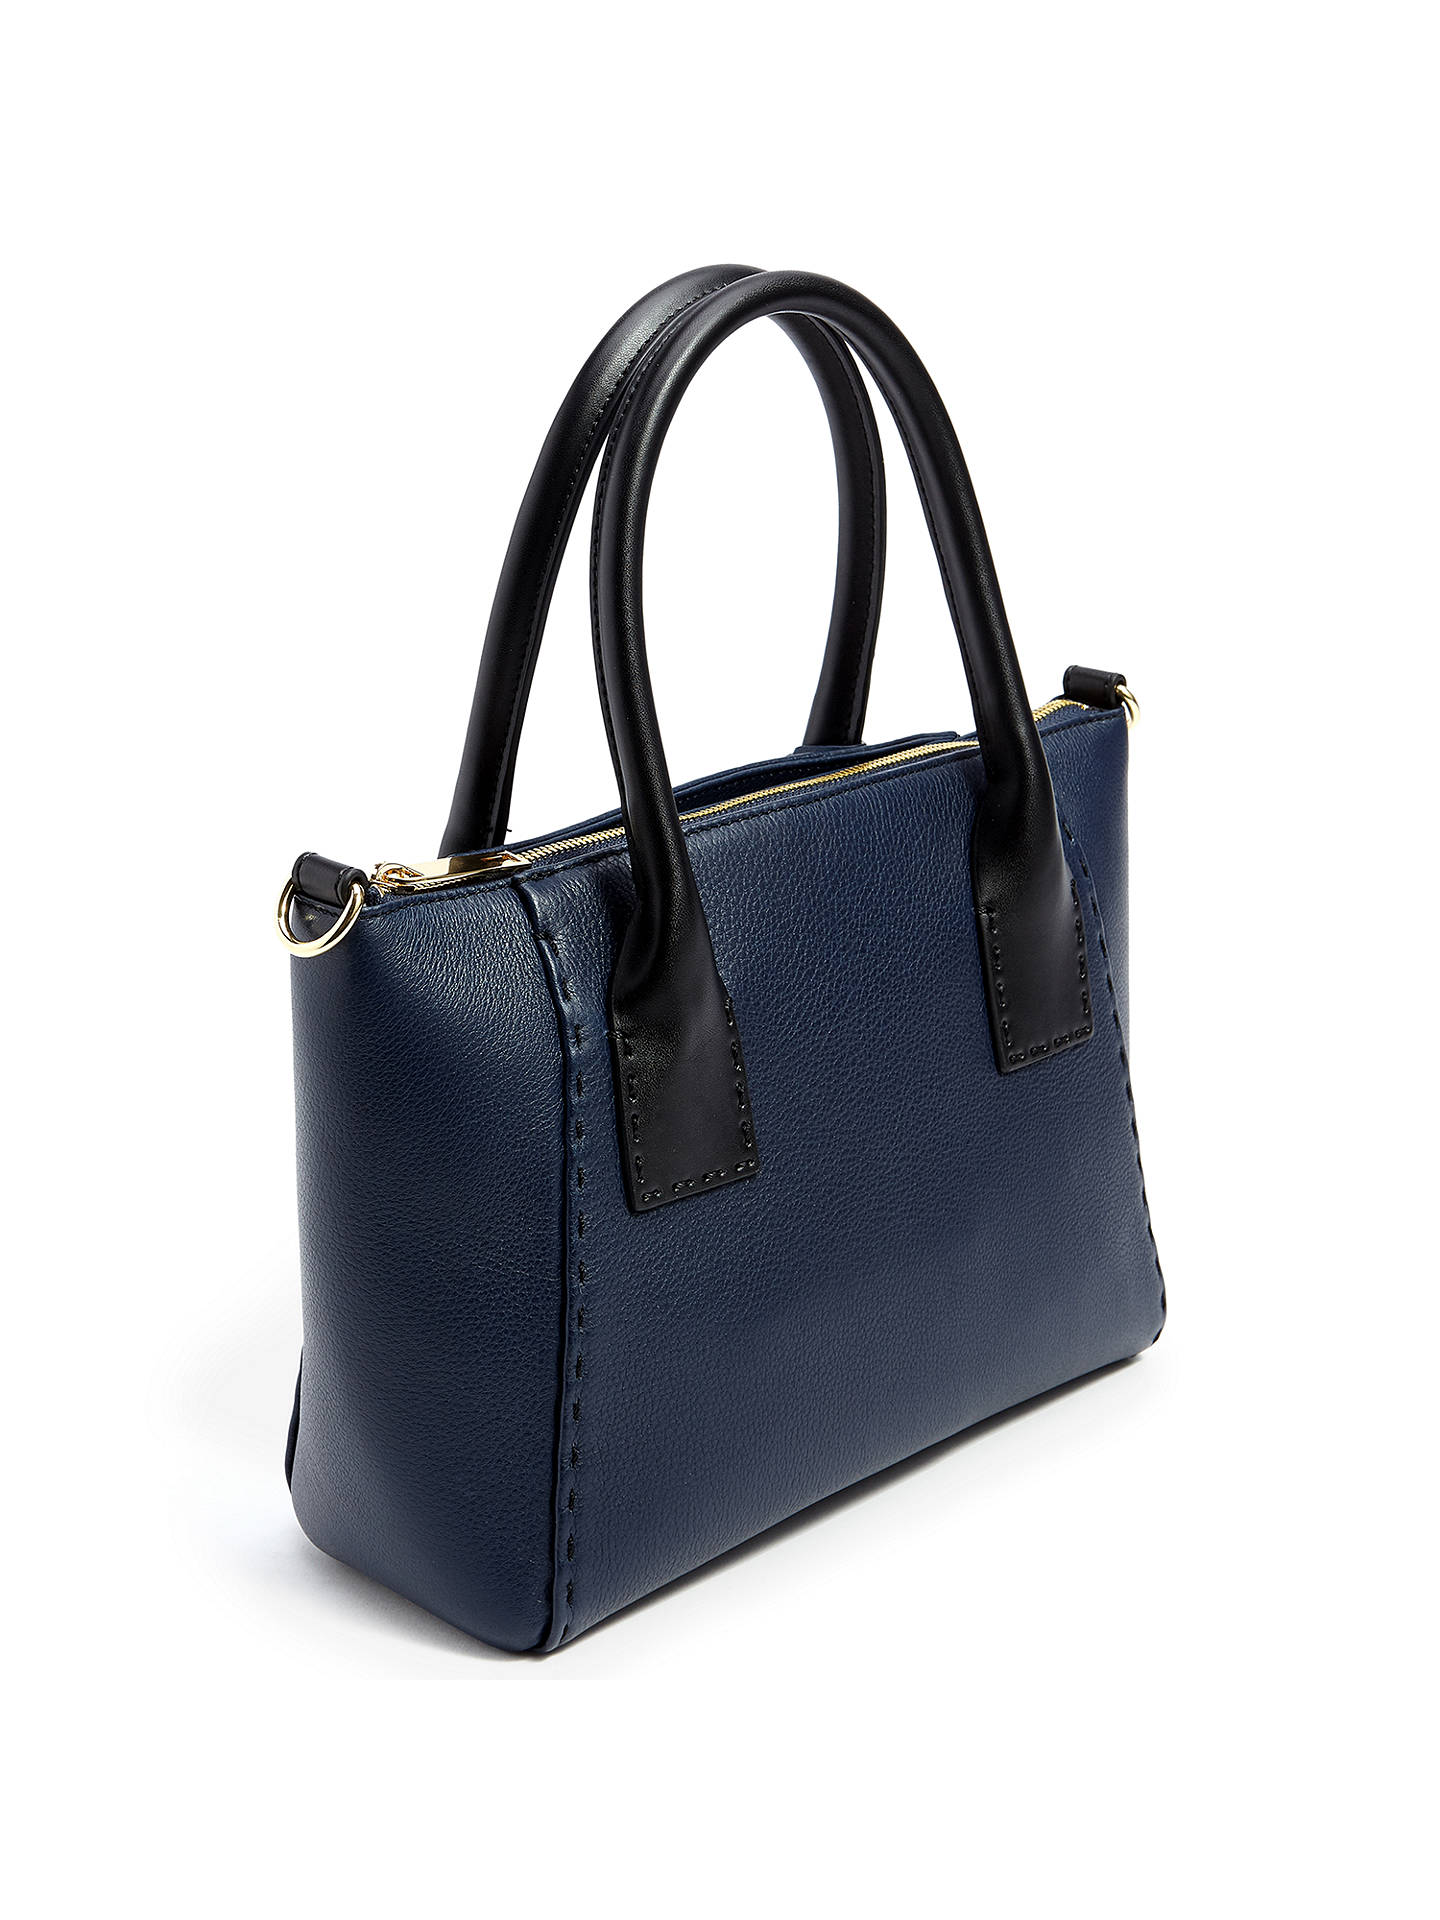 ecd7e709ee80 Ted Baker Lauren Small Leather Tote Bag at John Lewis   Partners